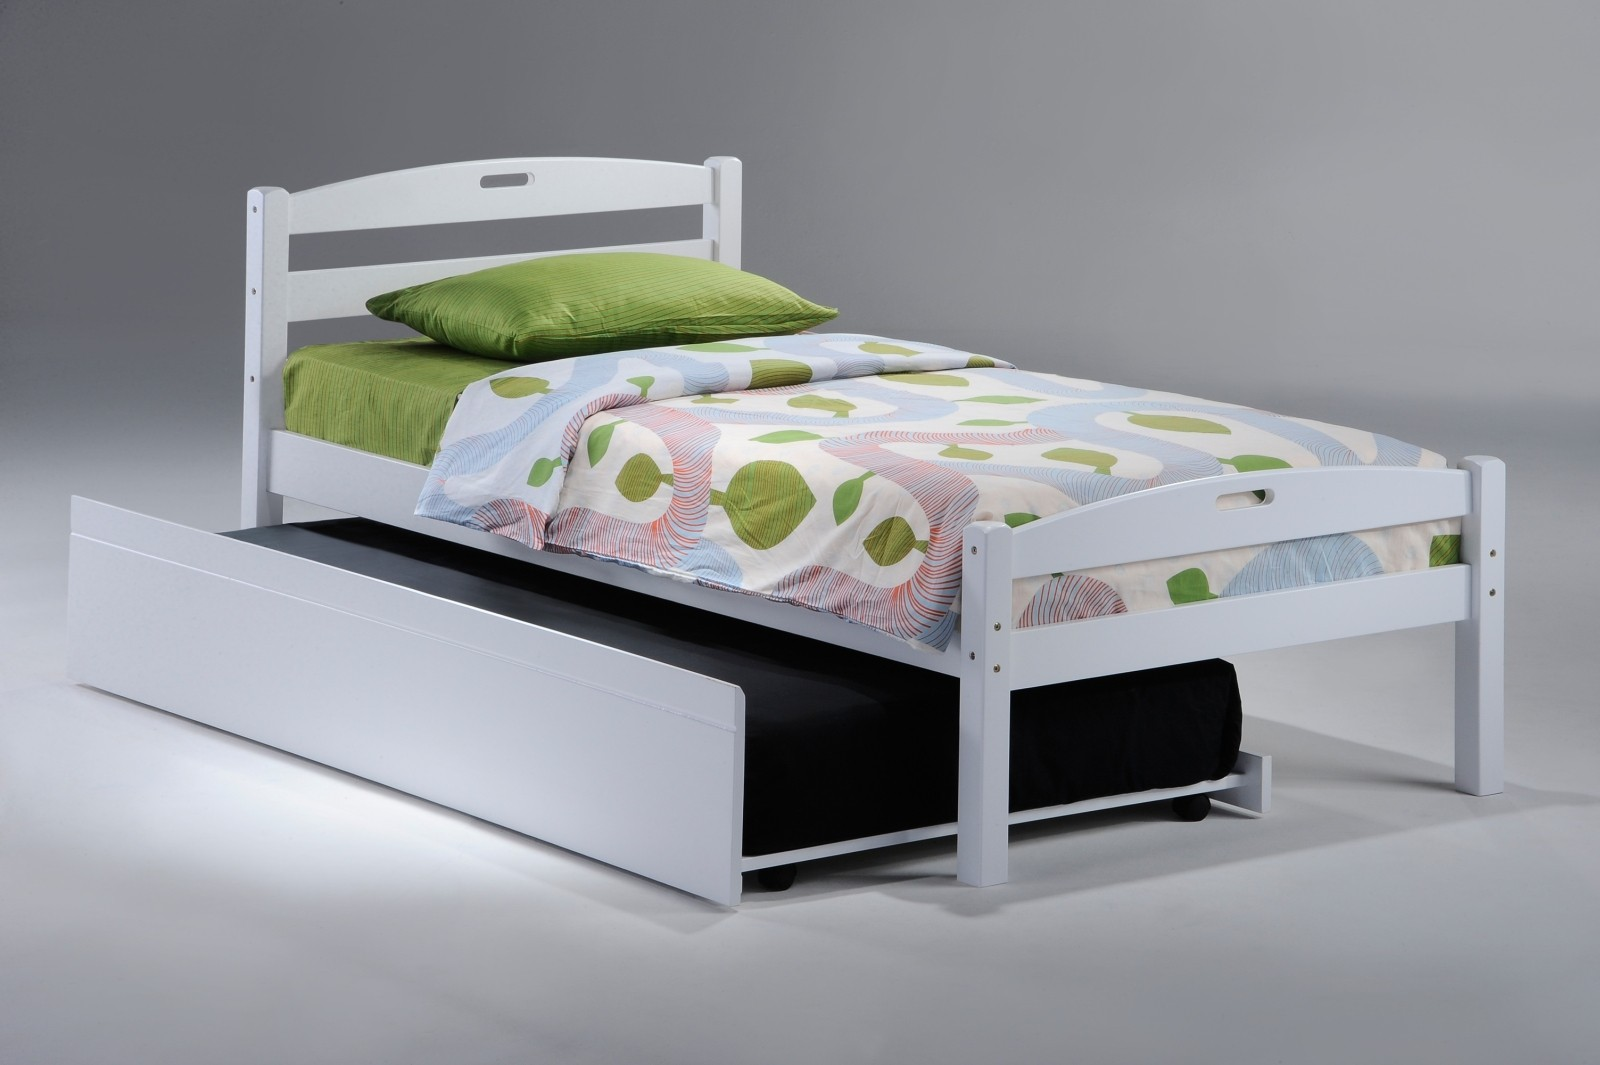 Amazing Trundle Beds For Children With Nature Theme And Green Pillow